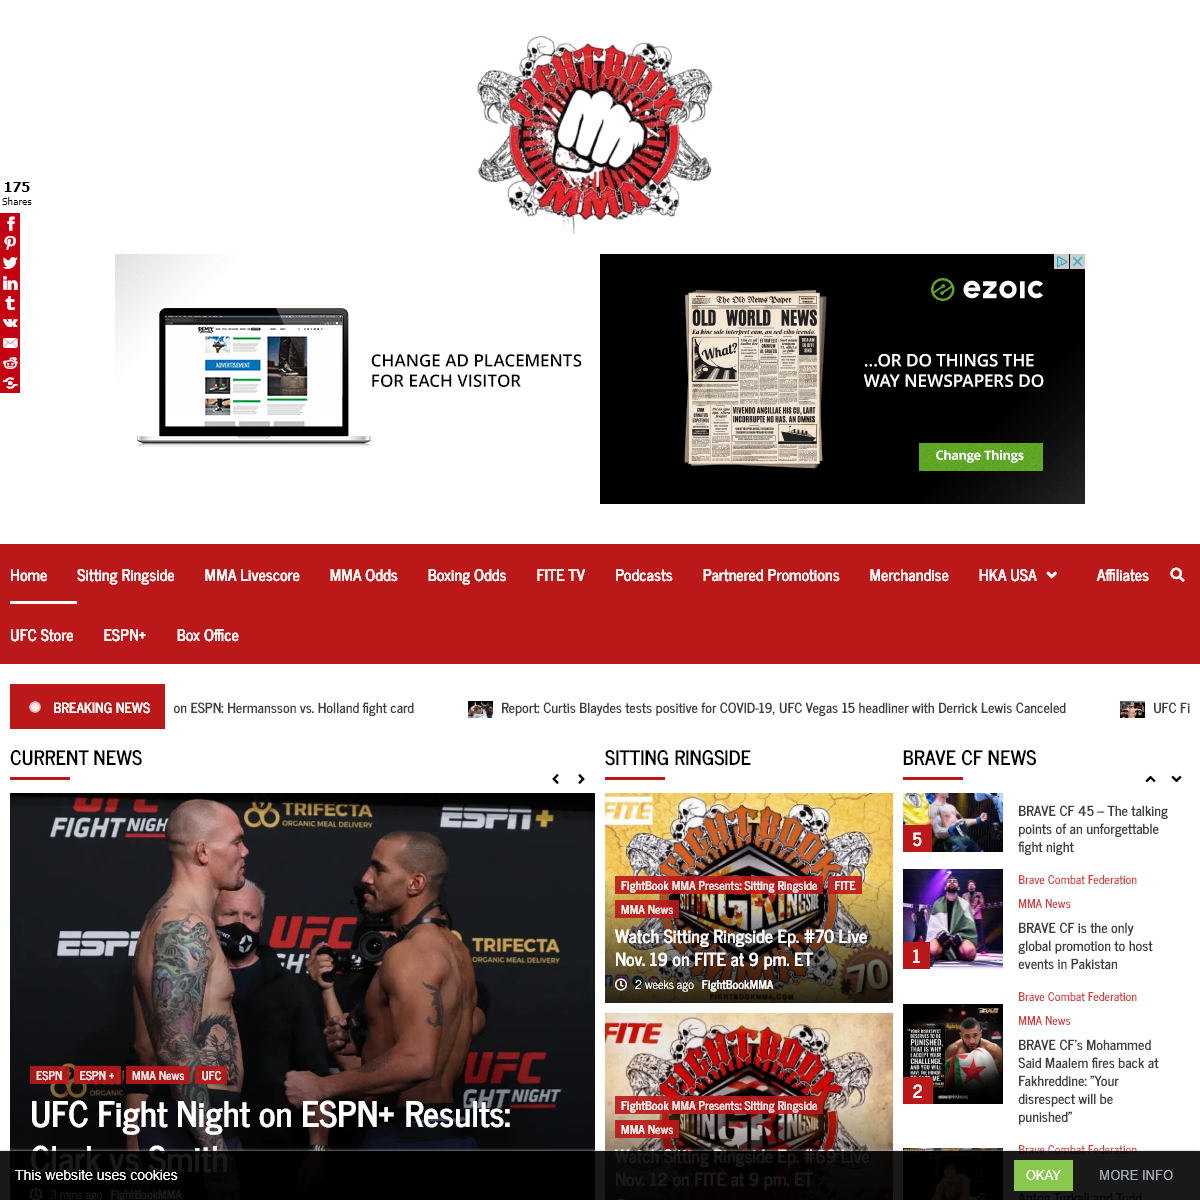 FightBook MMA - UFC and Combat Sports News